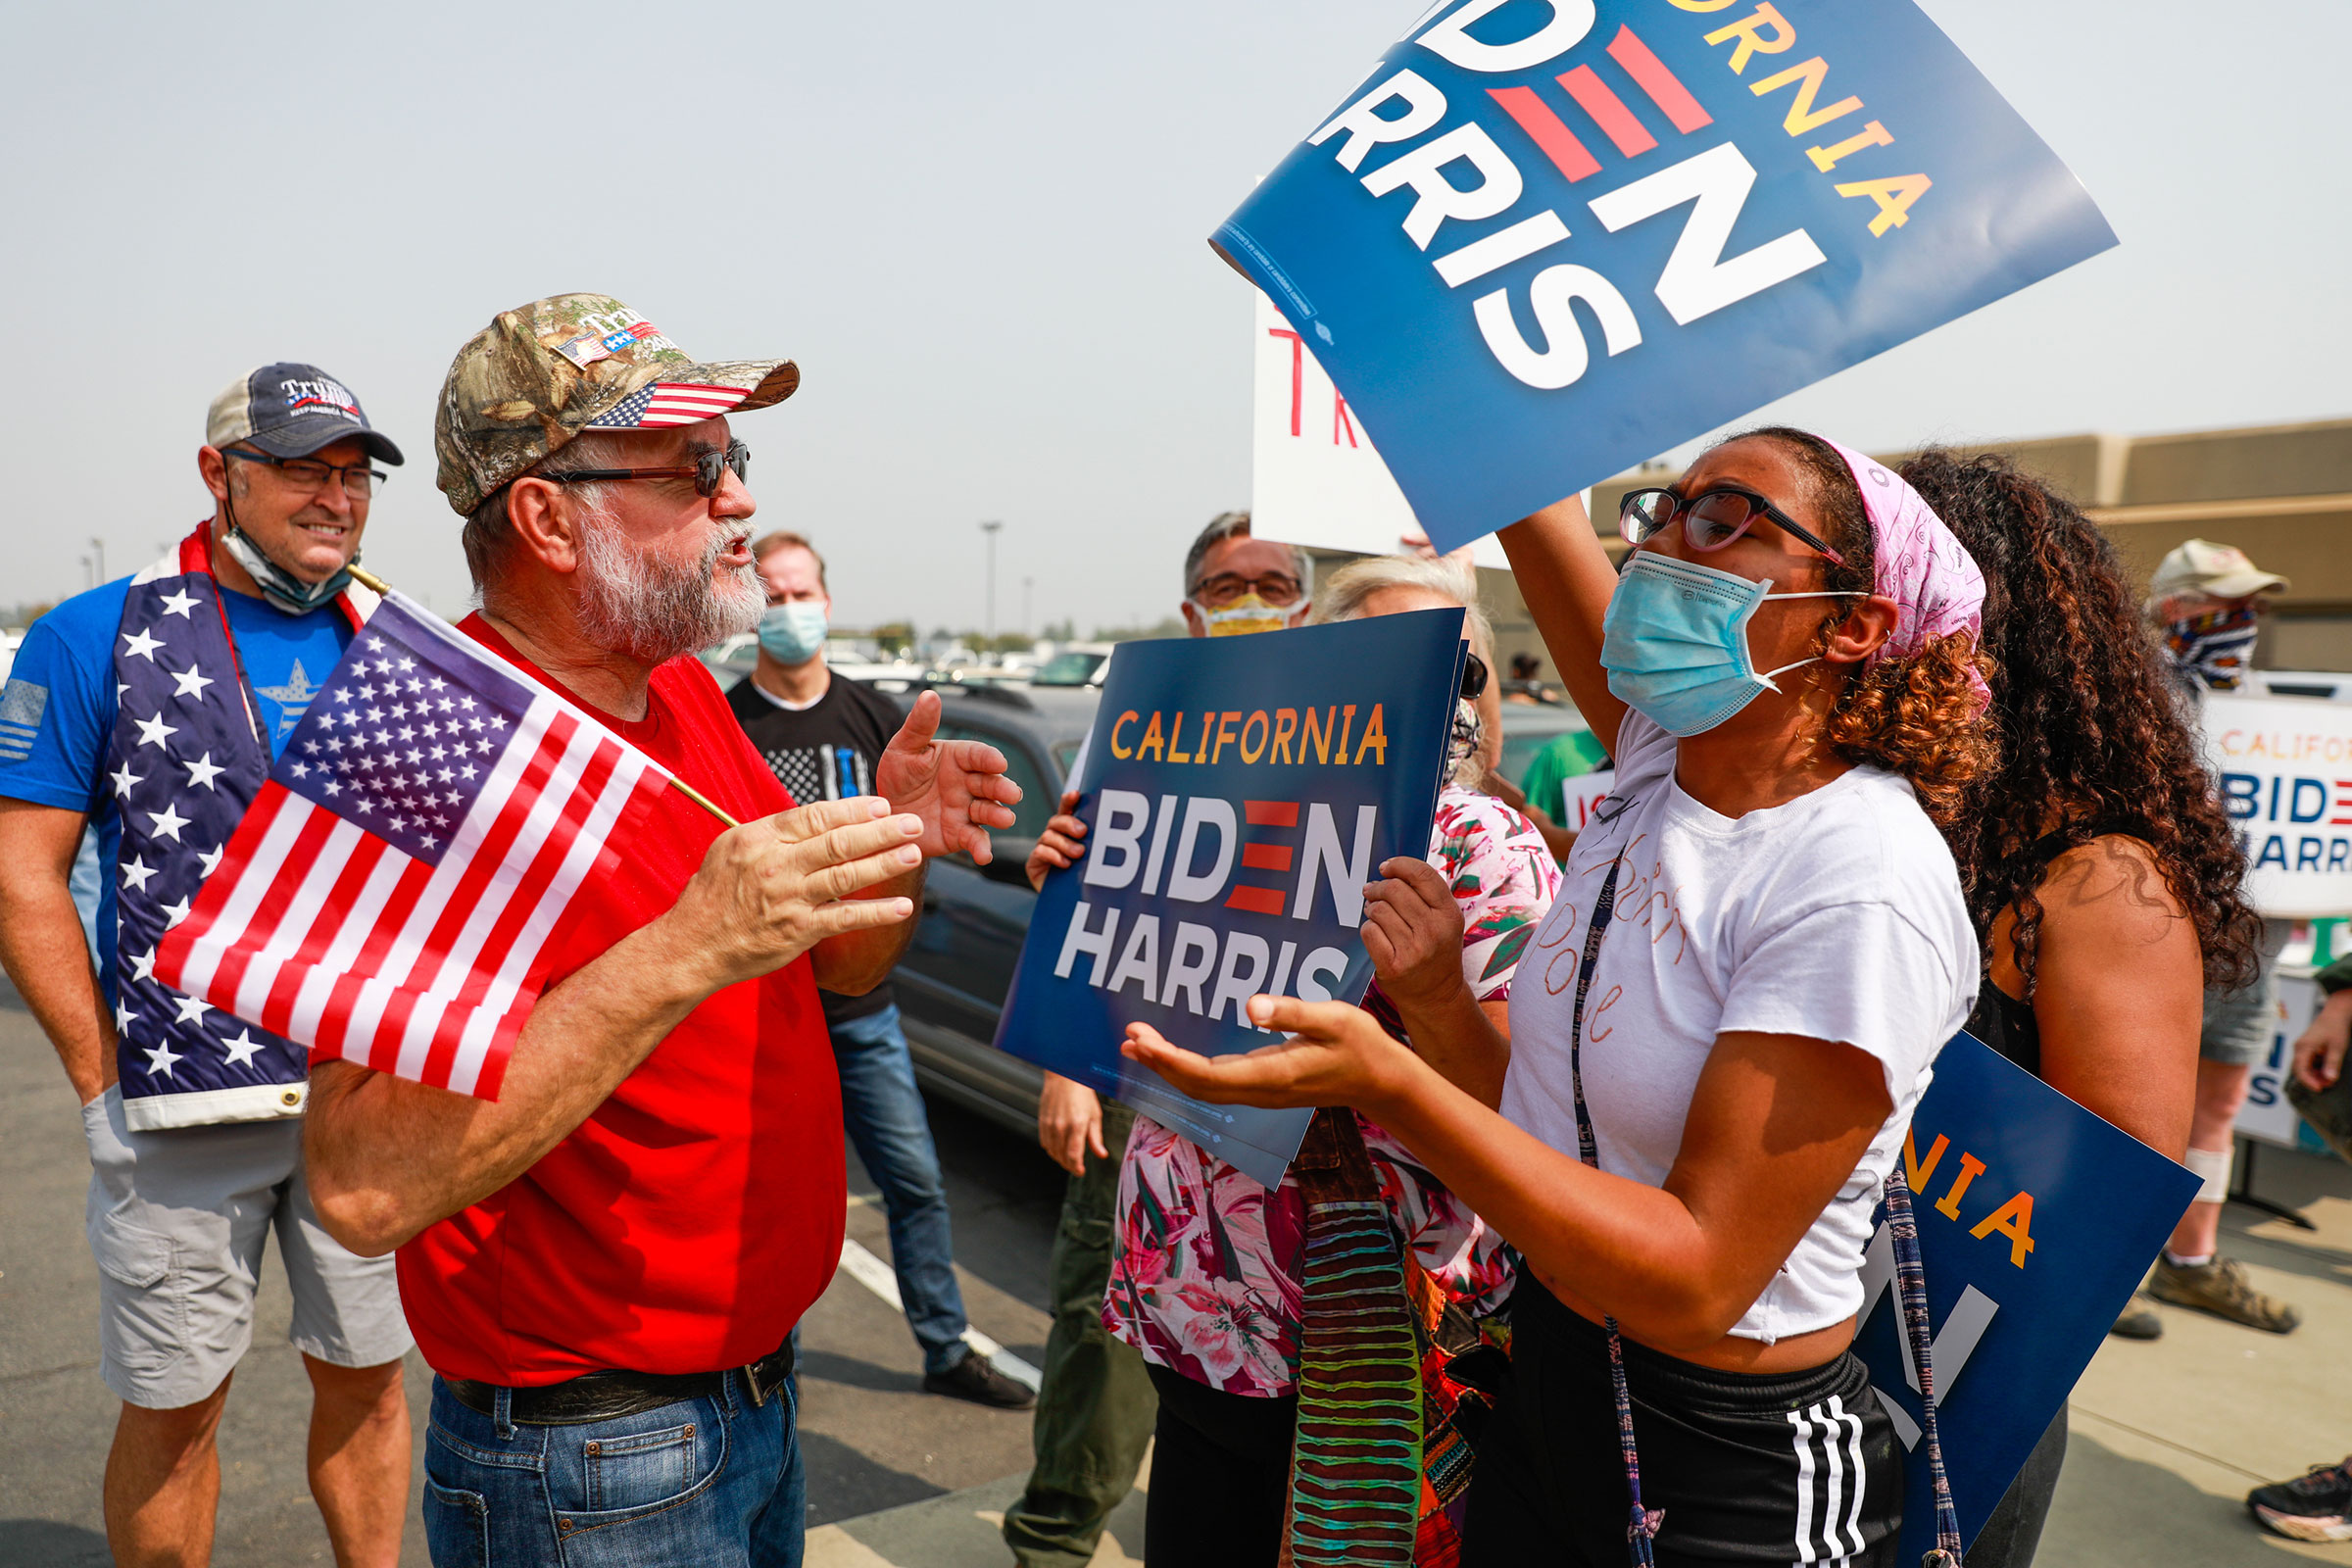 A Trump supporter argues with a Biden supporter on the street outside Sacramento McClellan Airport as President Donald Trump was being briefed on wildfires in a hangar in McClellan Park, Sacramento, Calif., on Sept. 14, 2020.